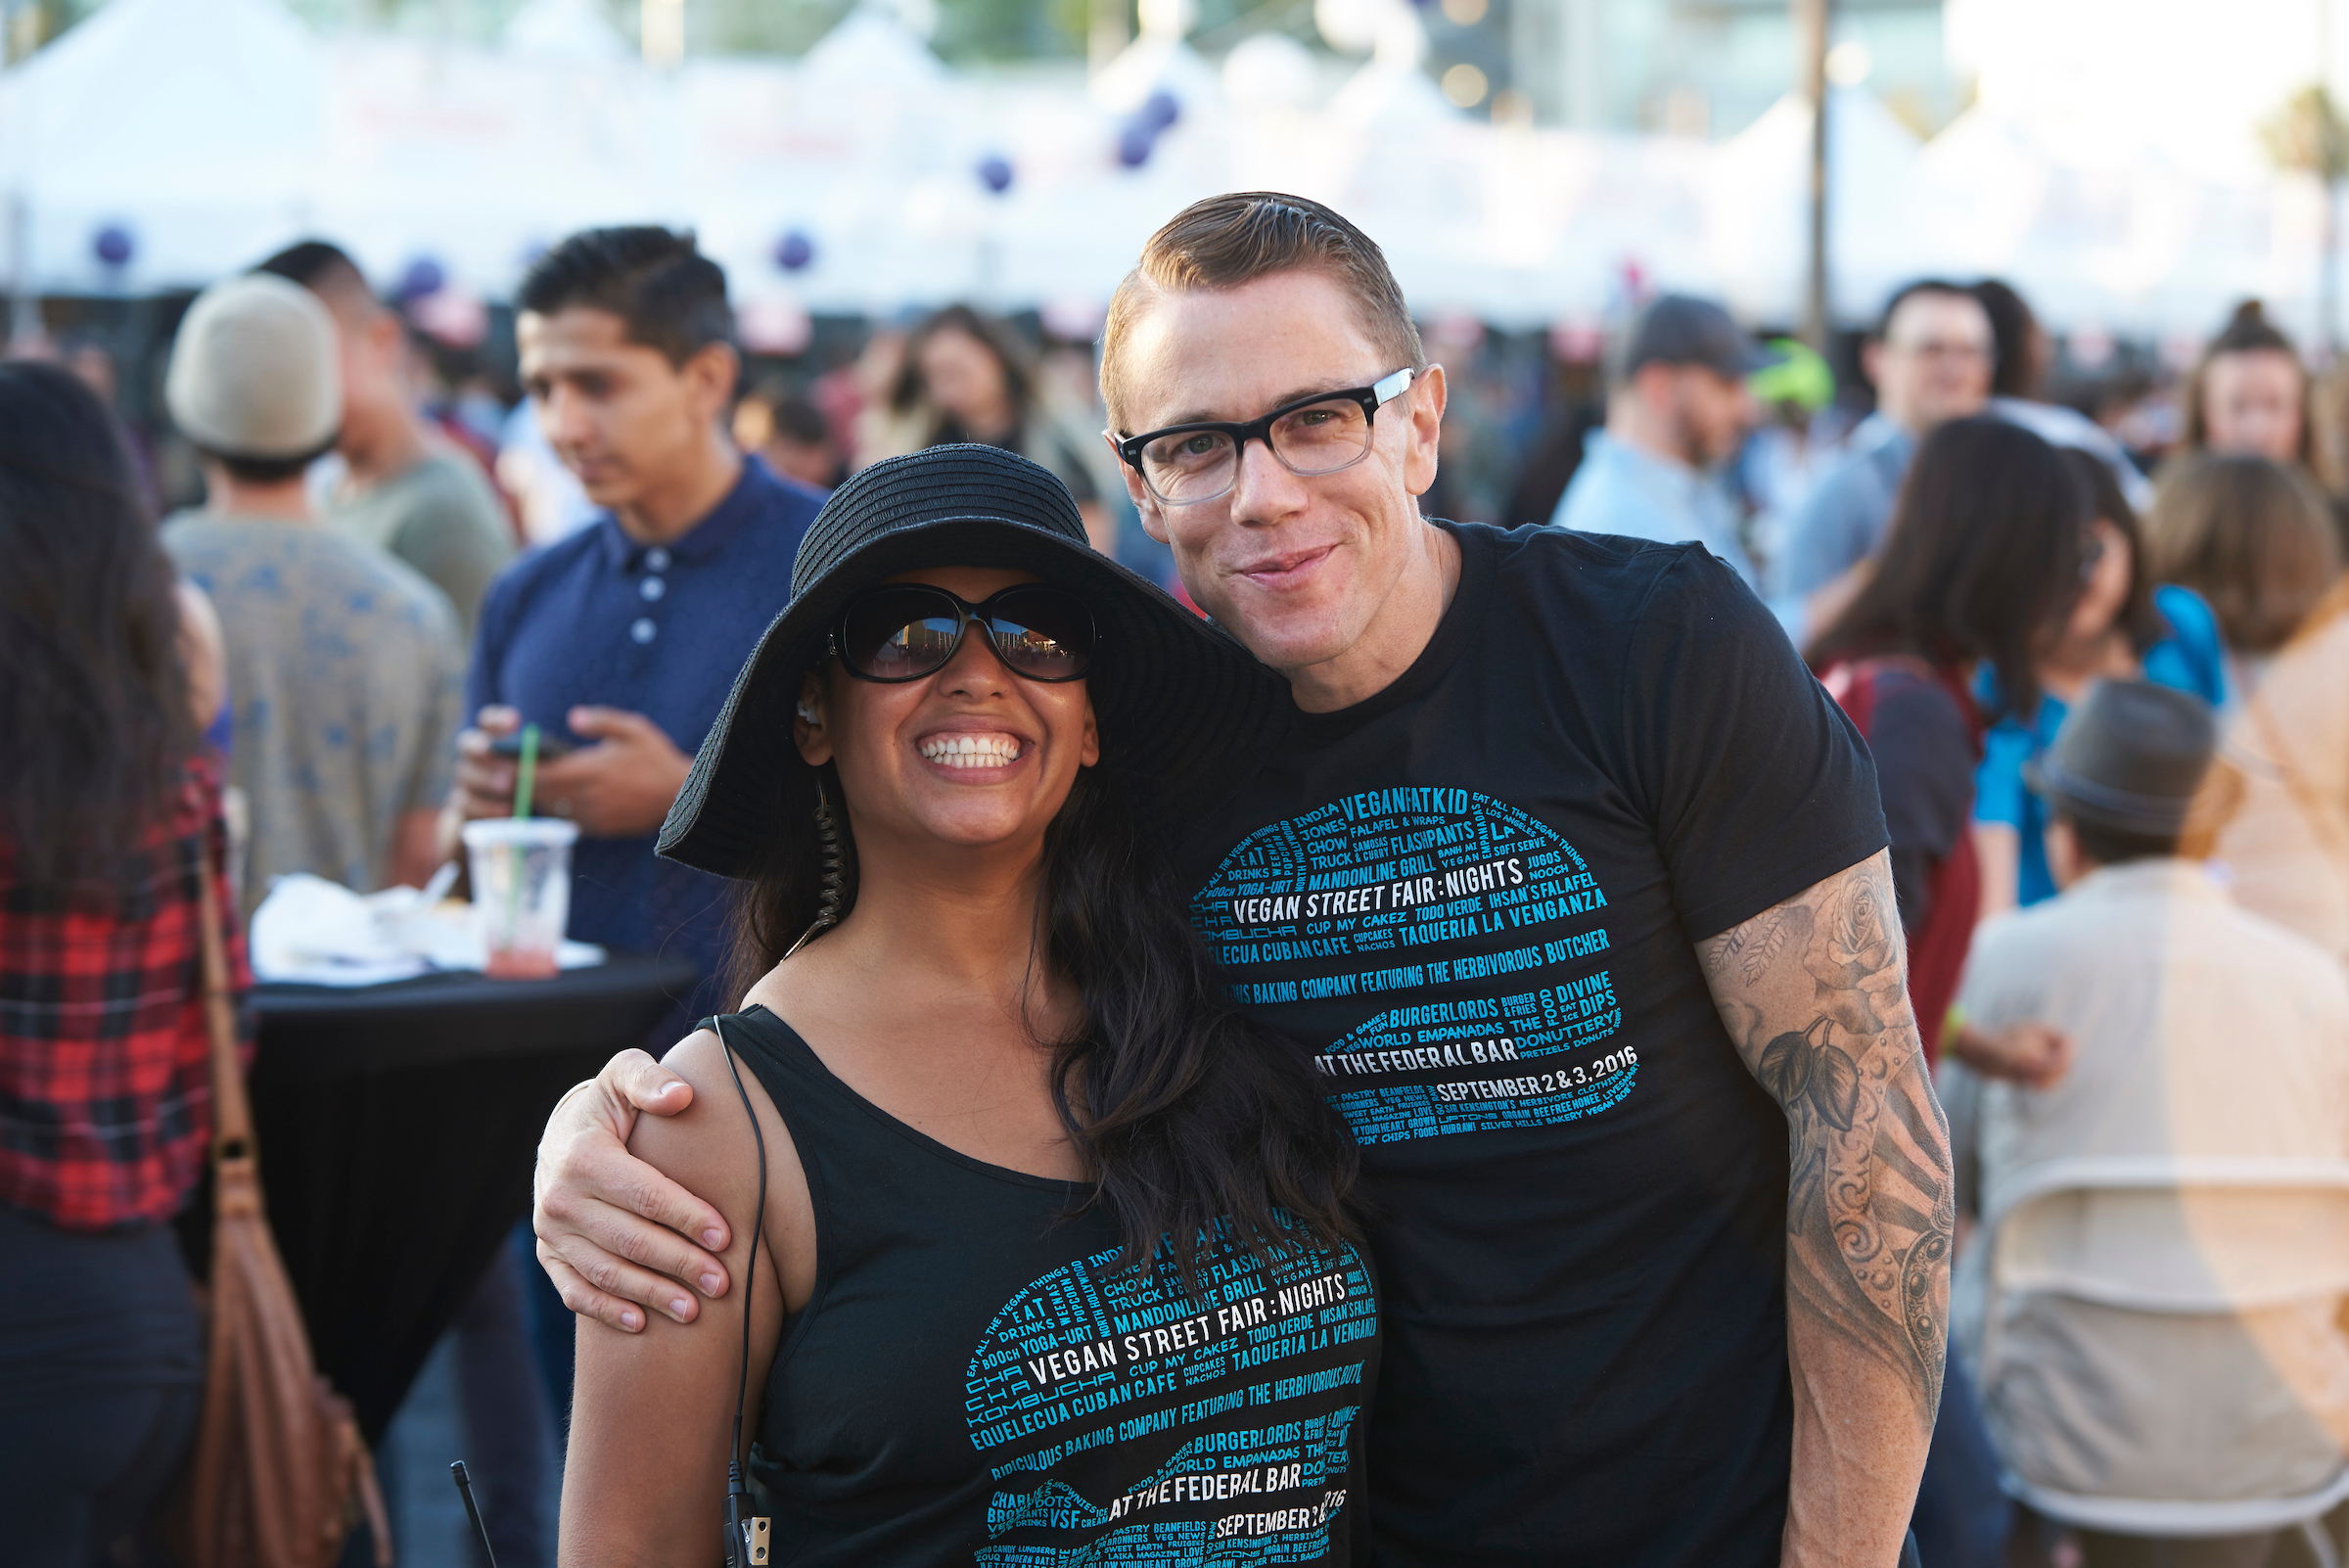 Jess and VeganFatKid at VSF Nights